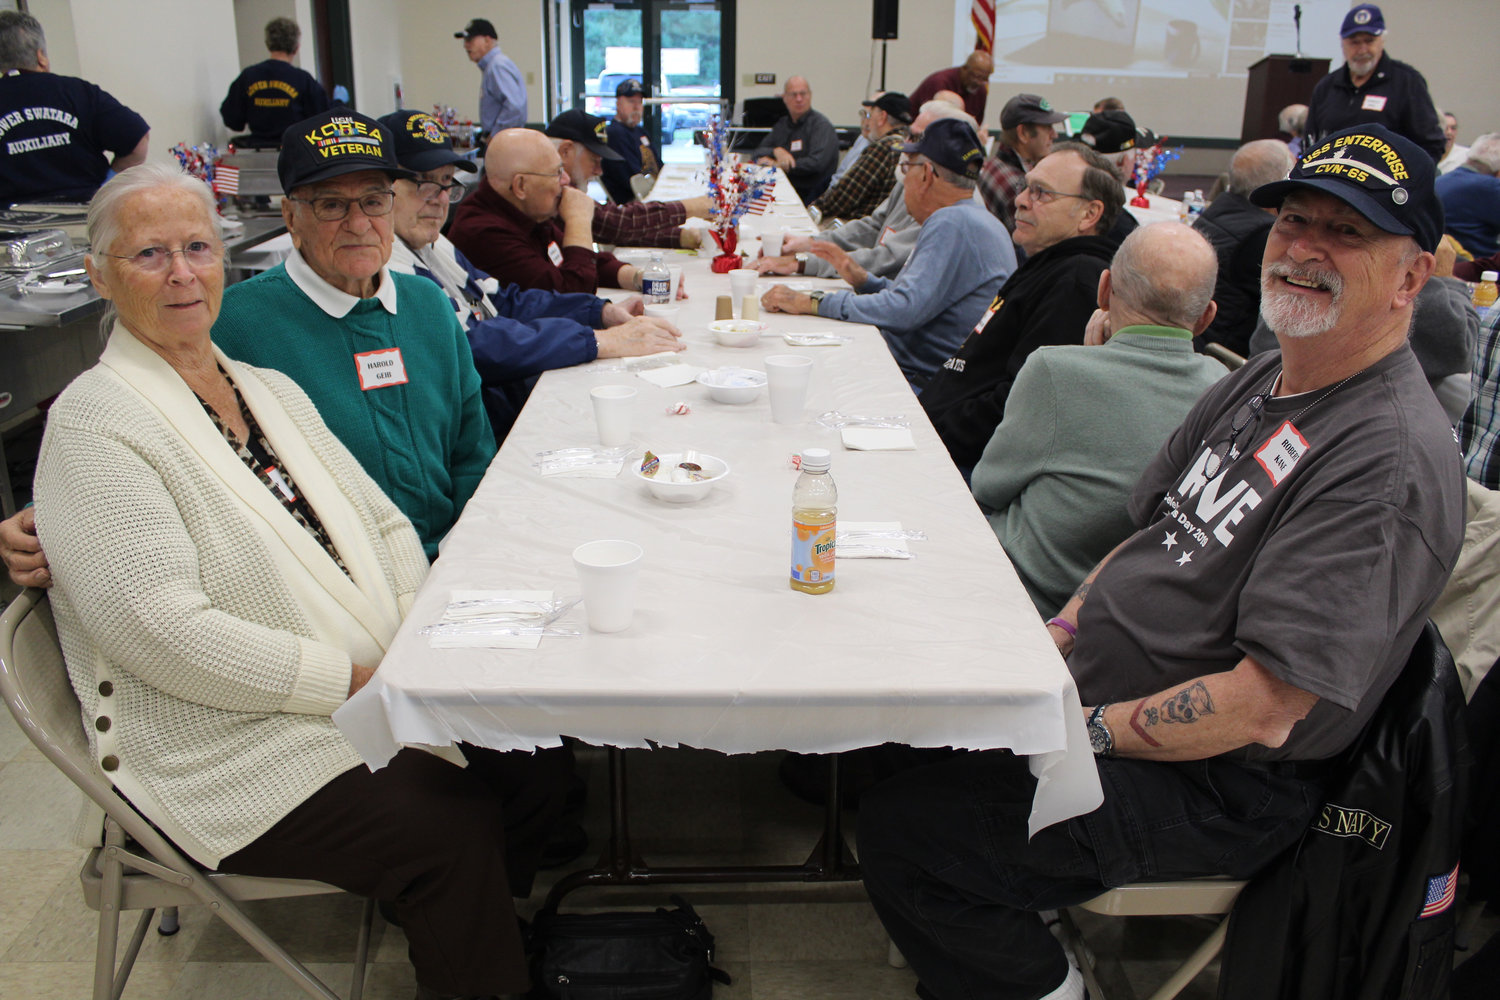 Shirley Geib and Navy veterans Harold Geib and Robert Kane attended Rep. Tom Mehaffie's Veterans Breakfast at the Lower Swatara Fire Hall Nov. 8.